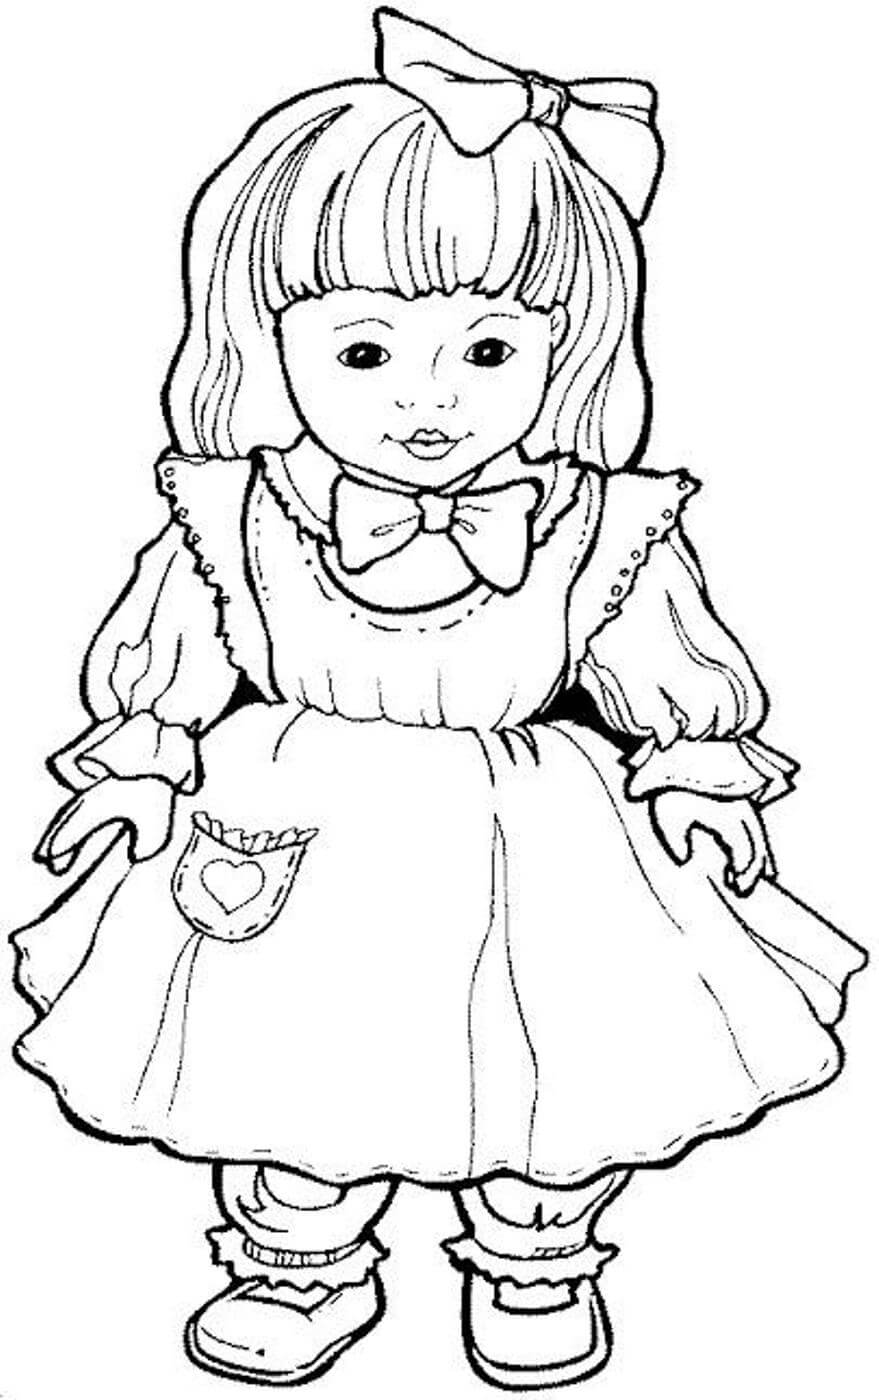 pictures of american girl dolls to color cute ag american girl doll coloring pages coloring sheets american of pictures dolls color girl to